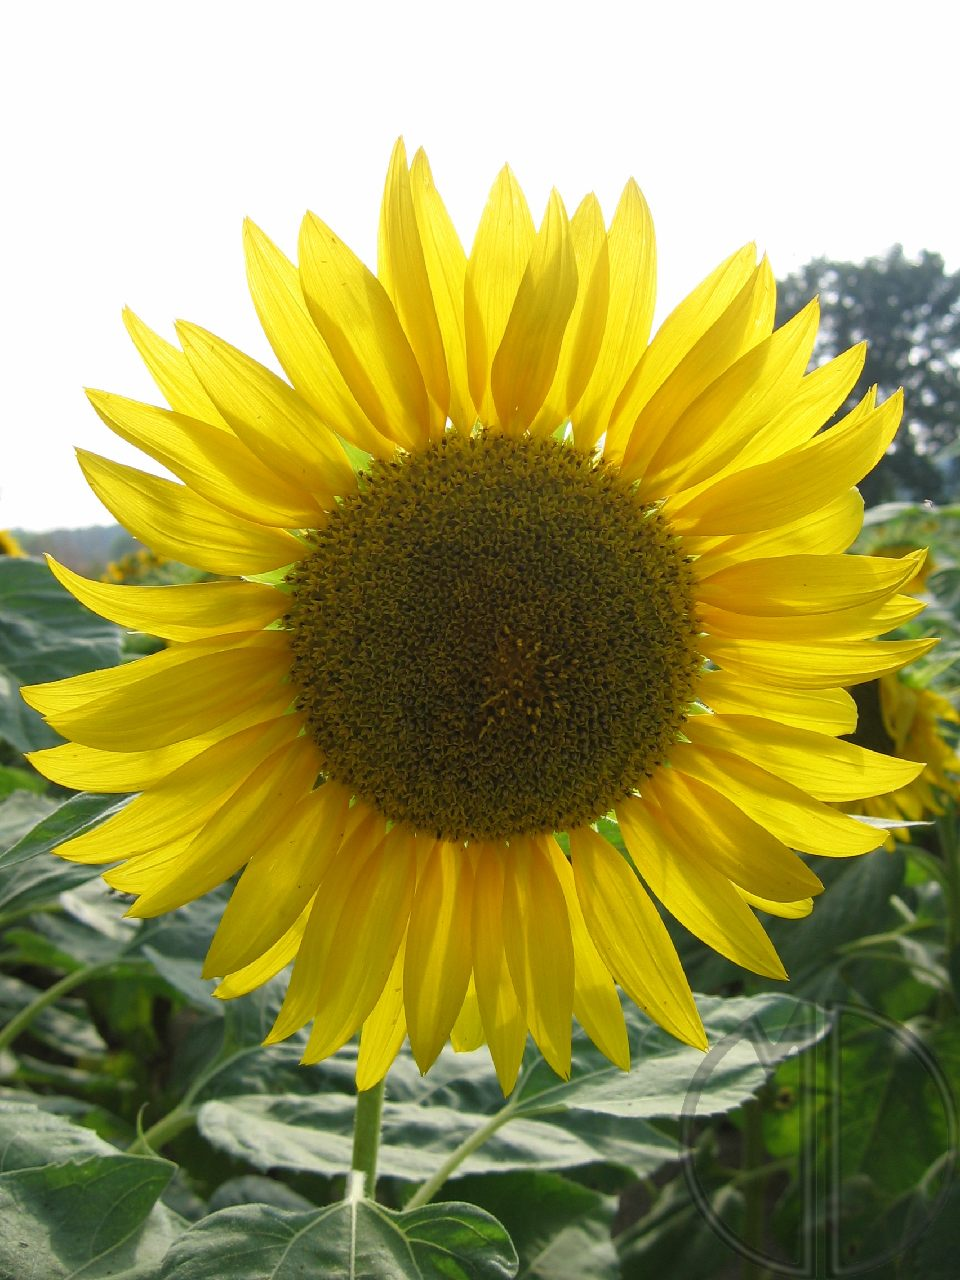 Photo tournesol 02